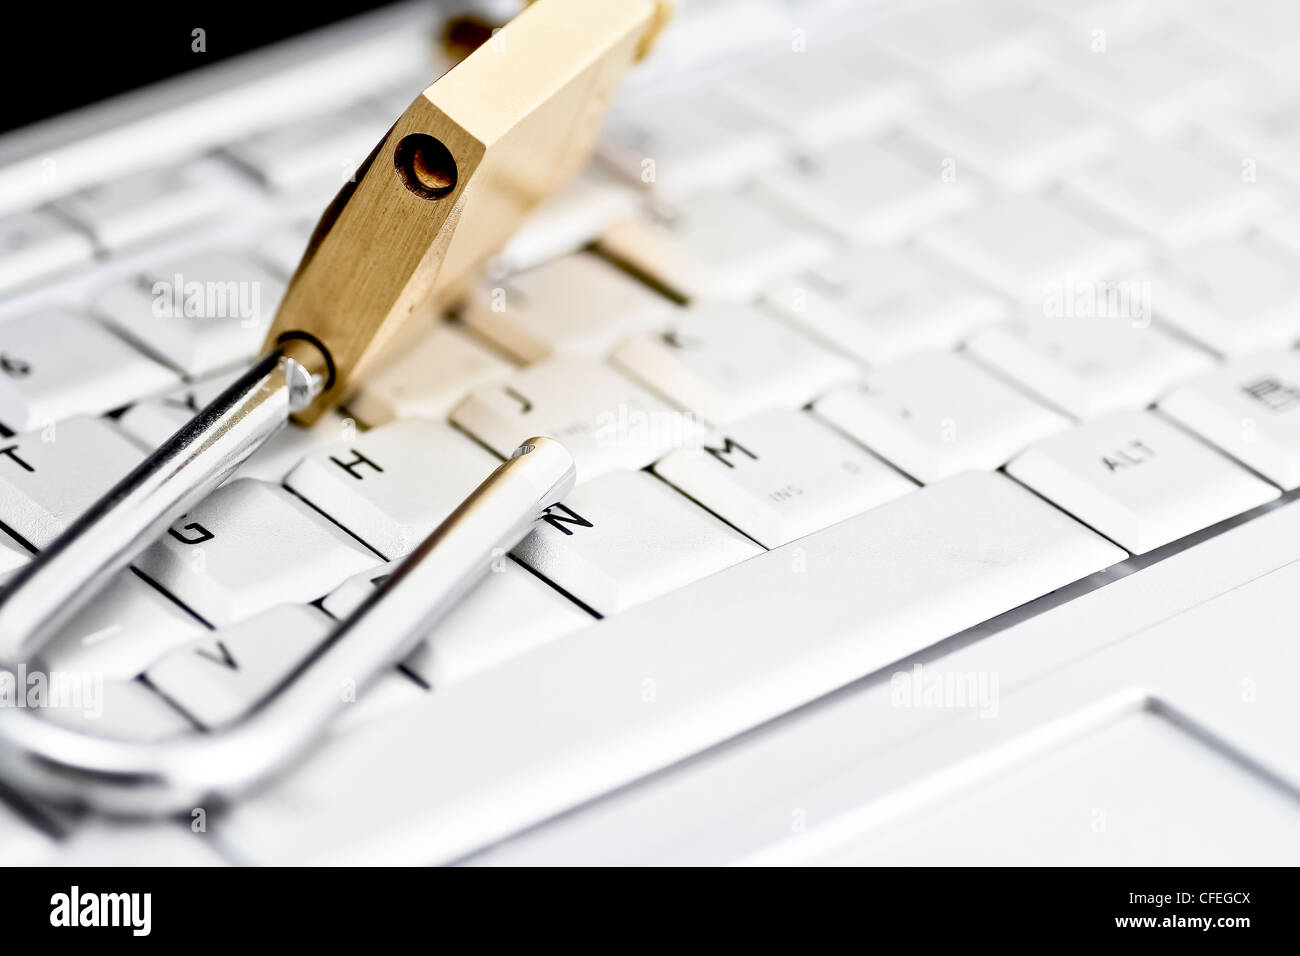 Brass padlock in unlocked position on top of computer keyboard - Stock Image